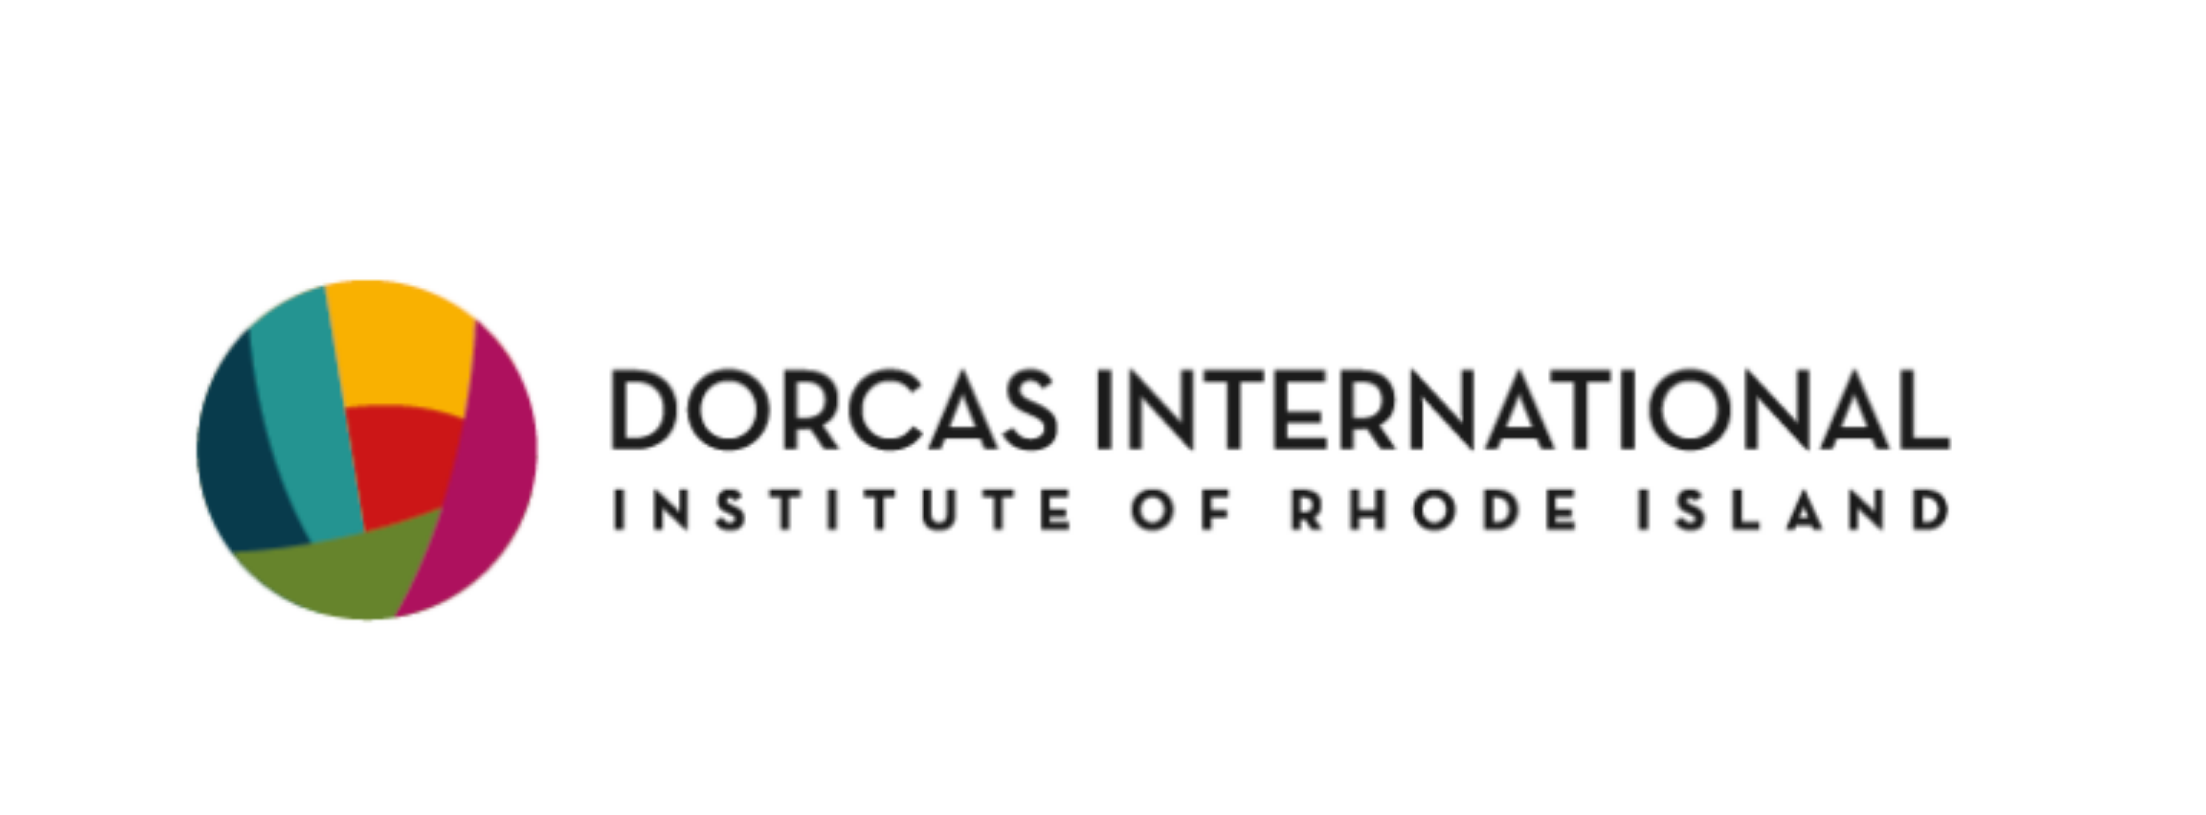 Dorcas International Institute of Rhode Island Logo